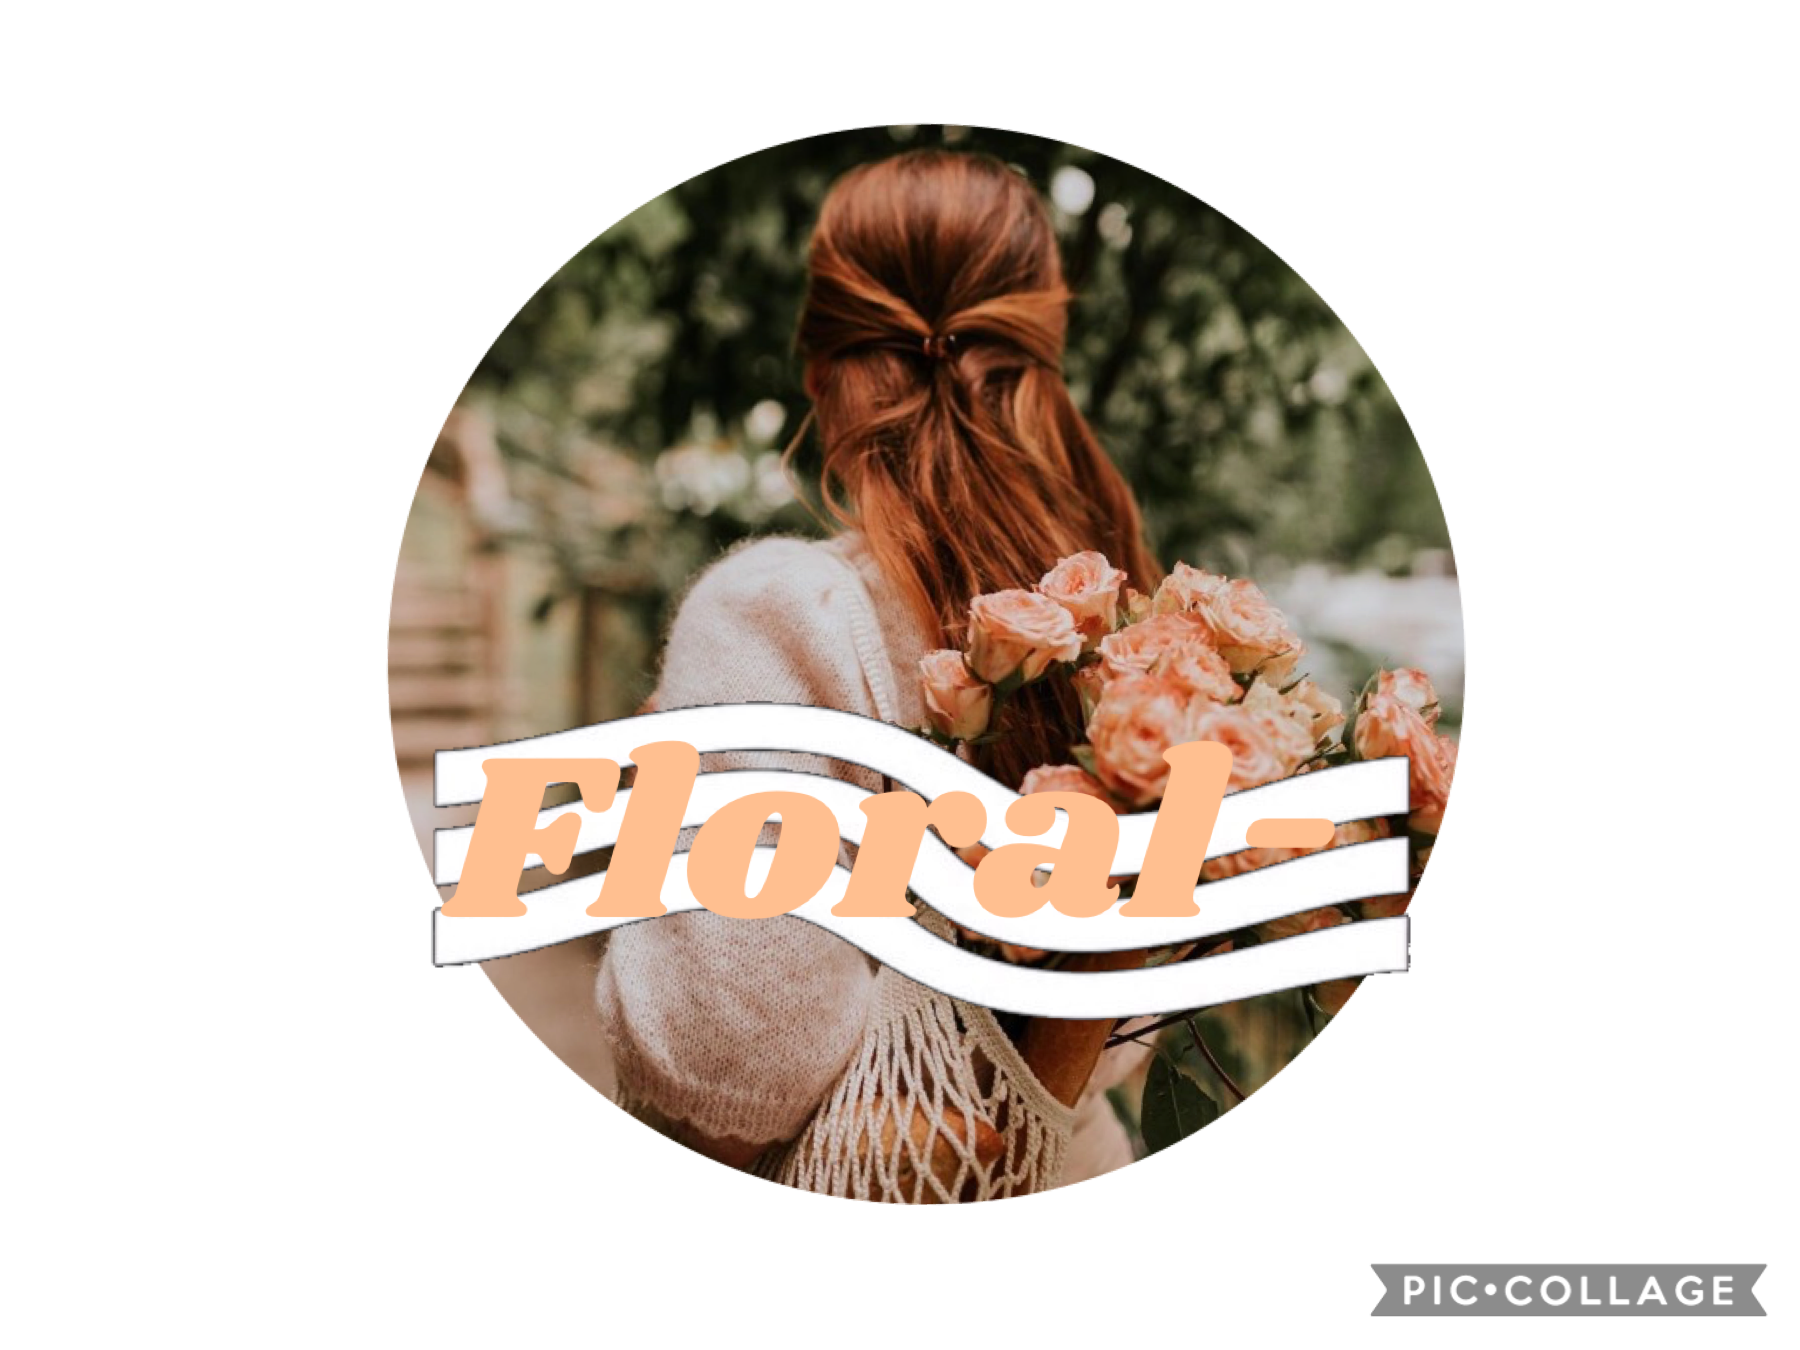 Icon for Floral- hope you like it please give credit if used!